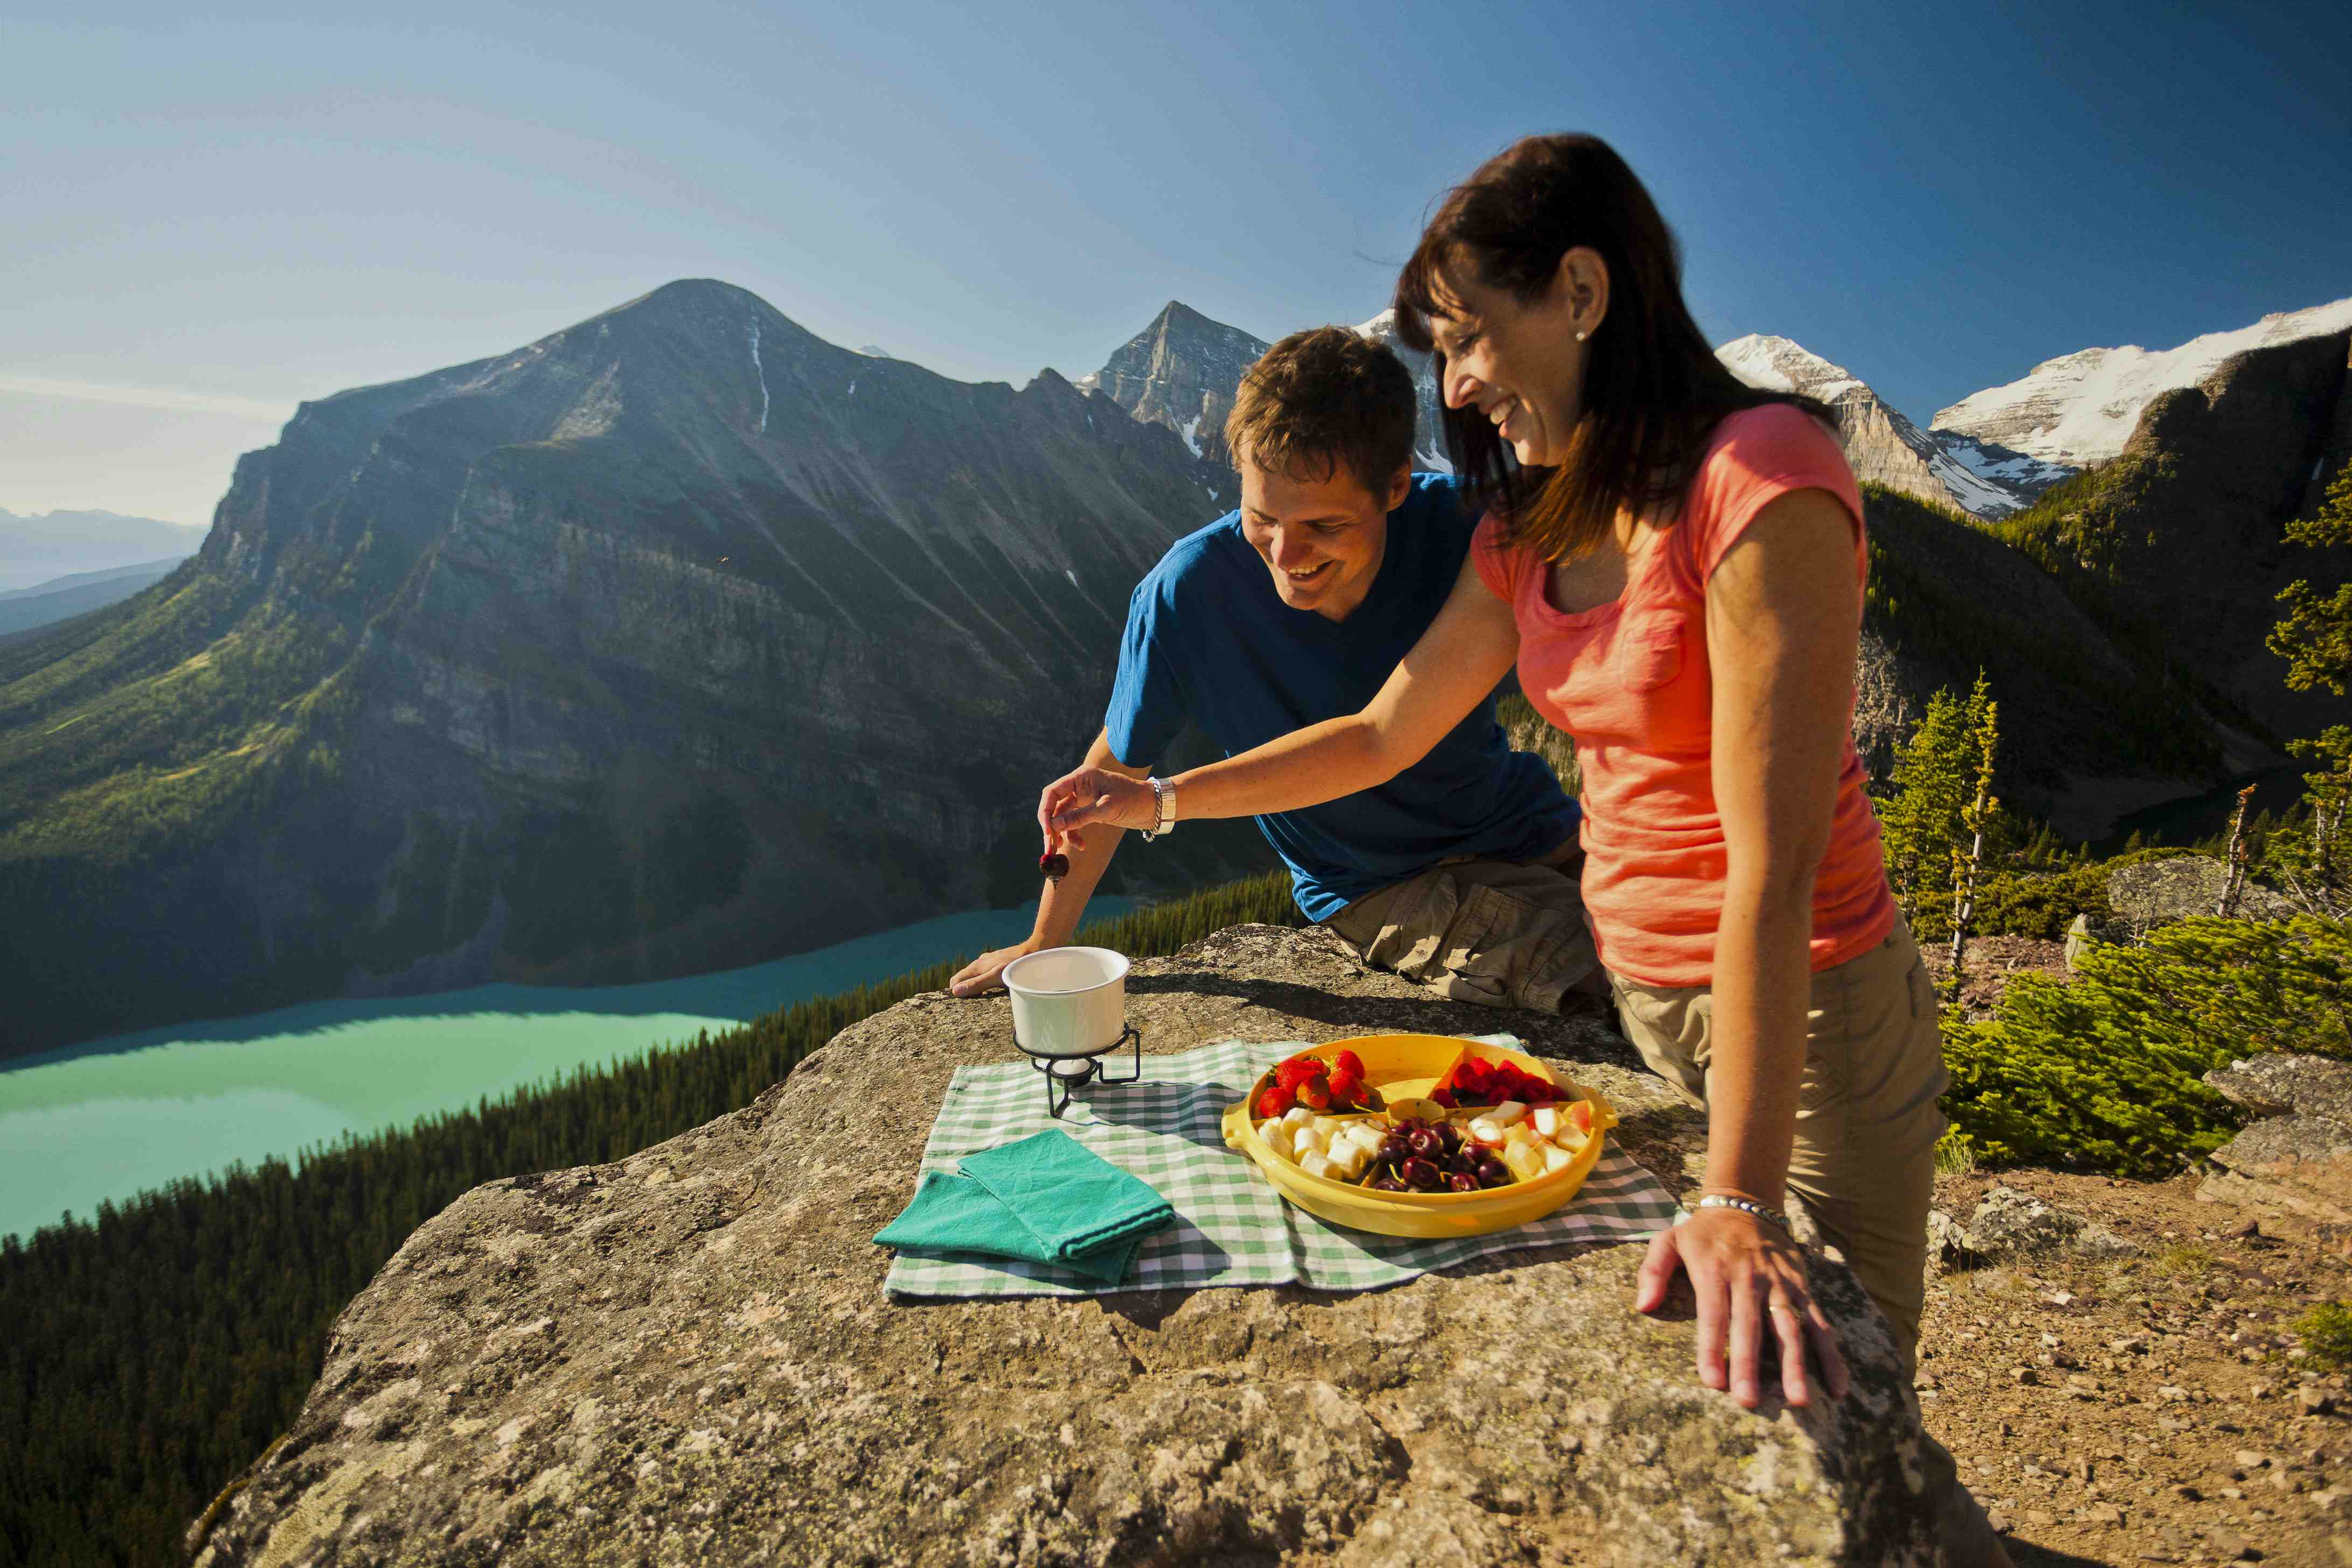 Head up to great heights for a picnic to remember in Banff (EnjoyBanff.com) Photo credit: Paul Zizka, Banff Lake Louise Tourism